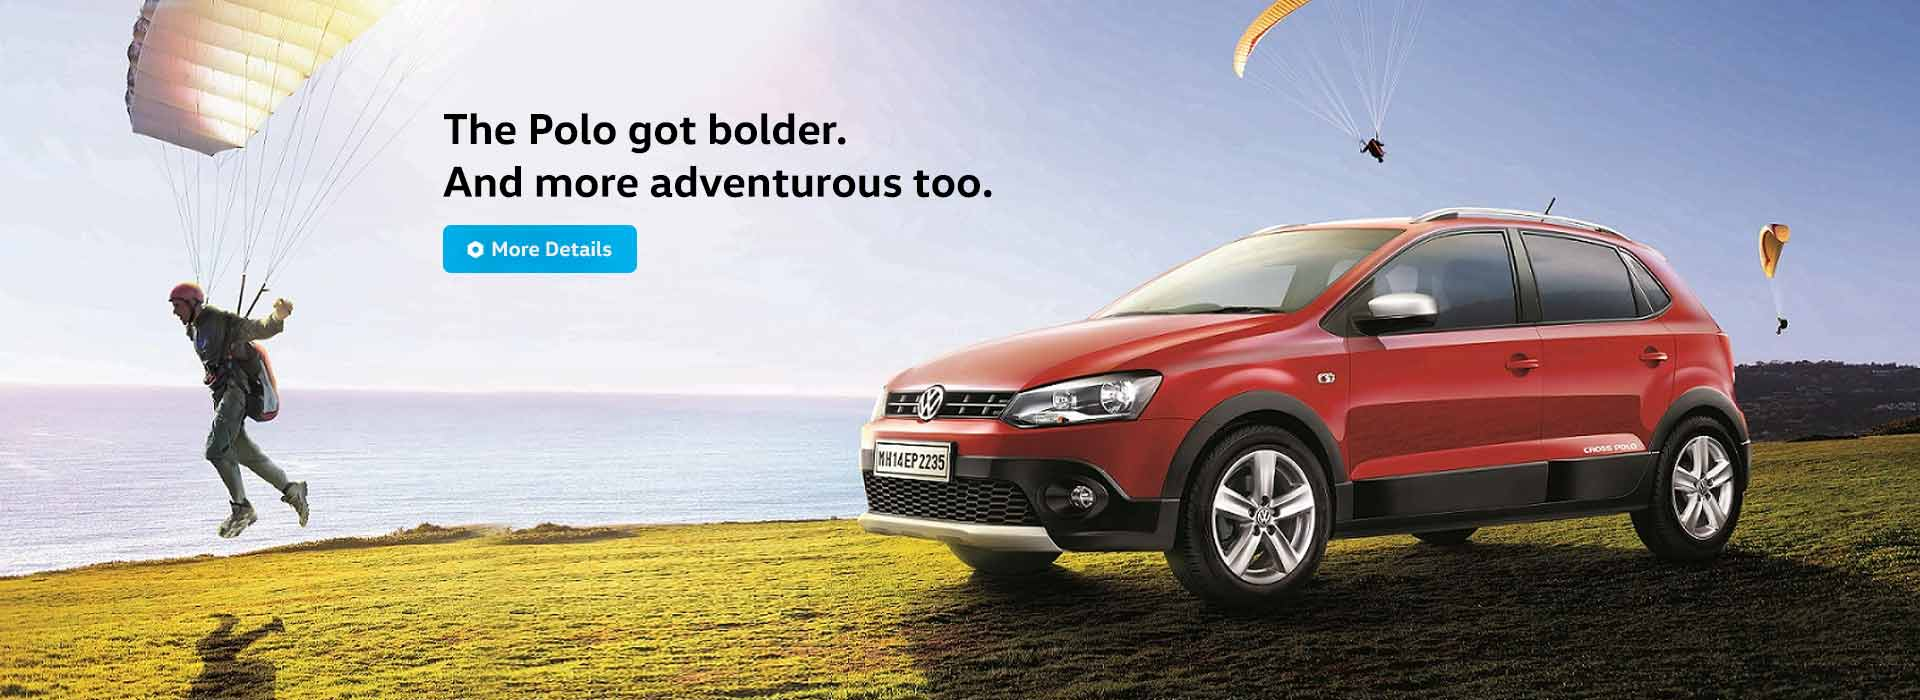 Vw Quote Volkswagen Car Dealers & Showroom In Chennai  Abra Motors